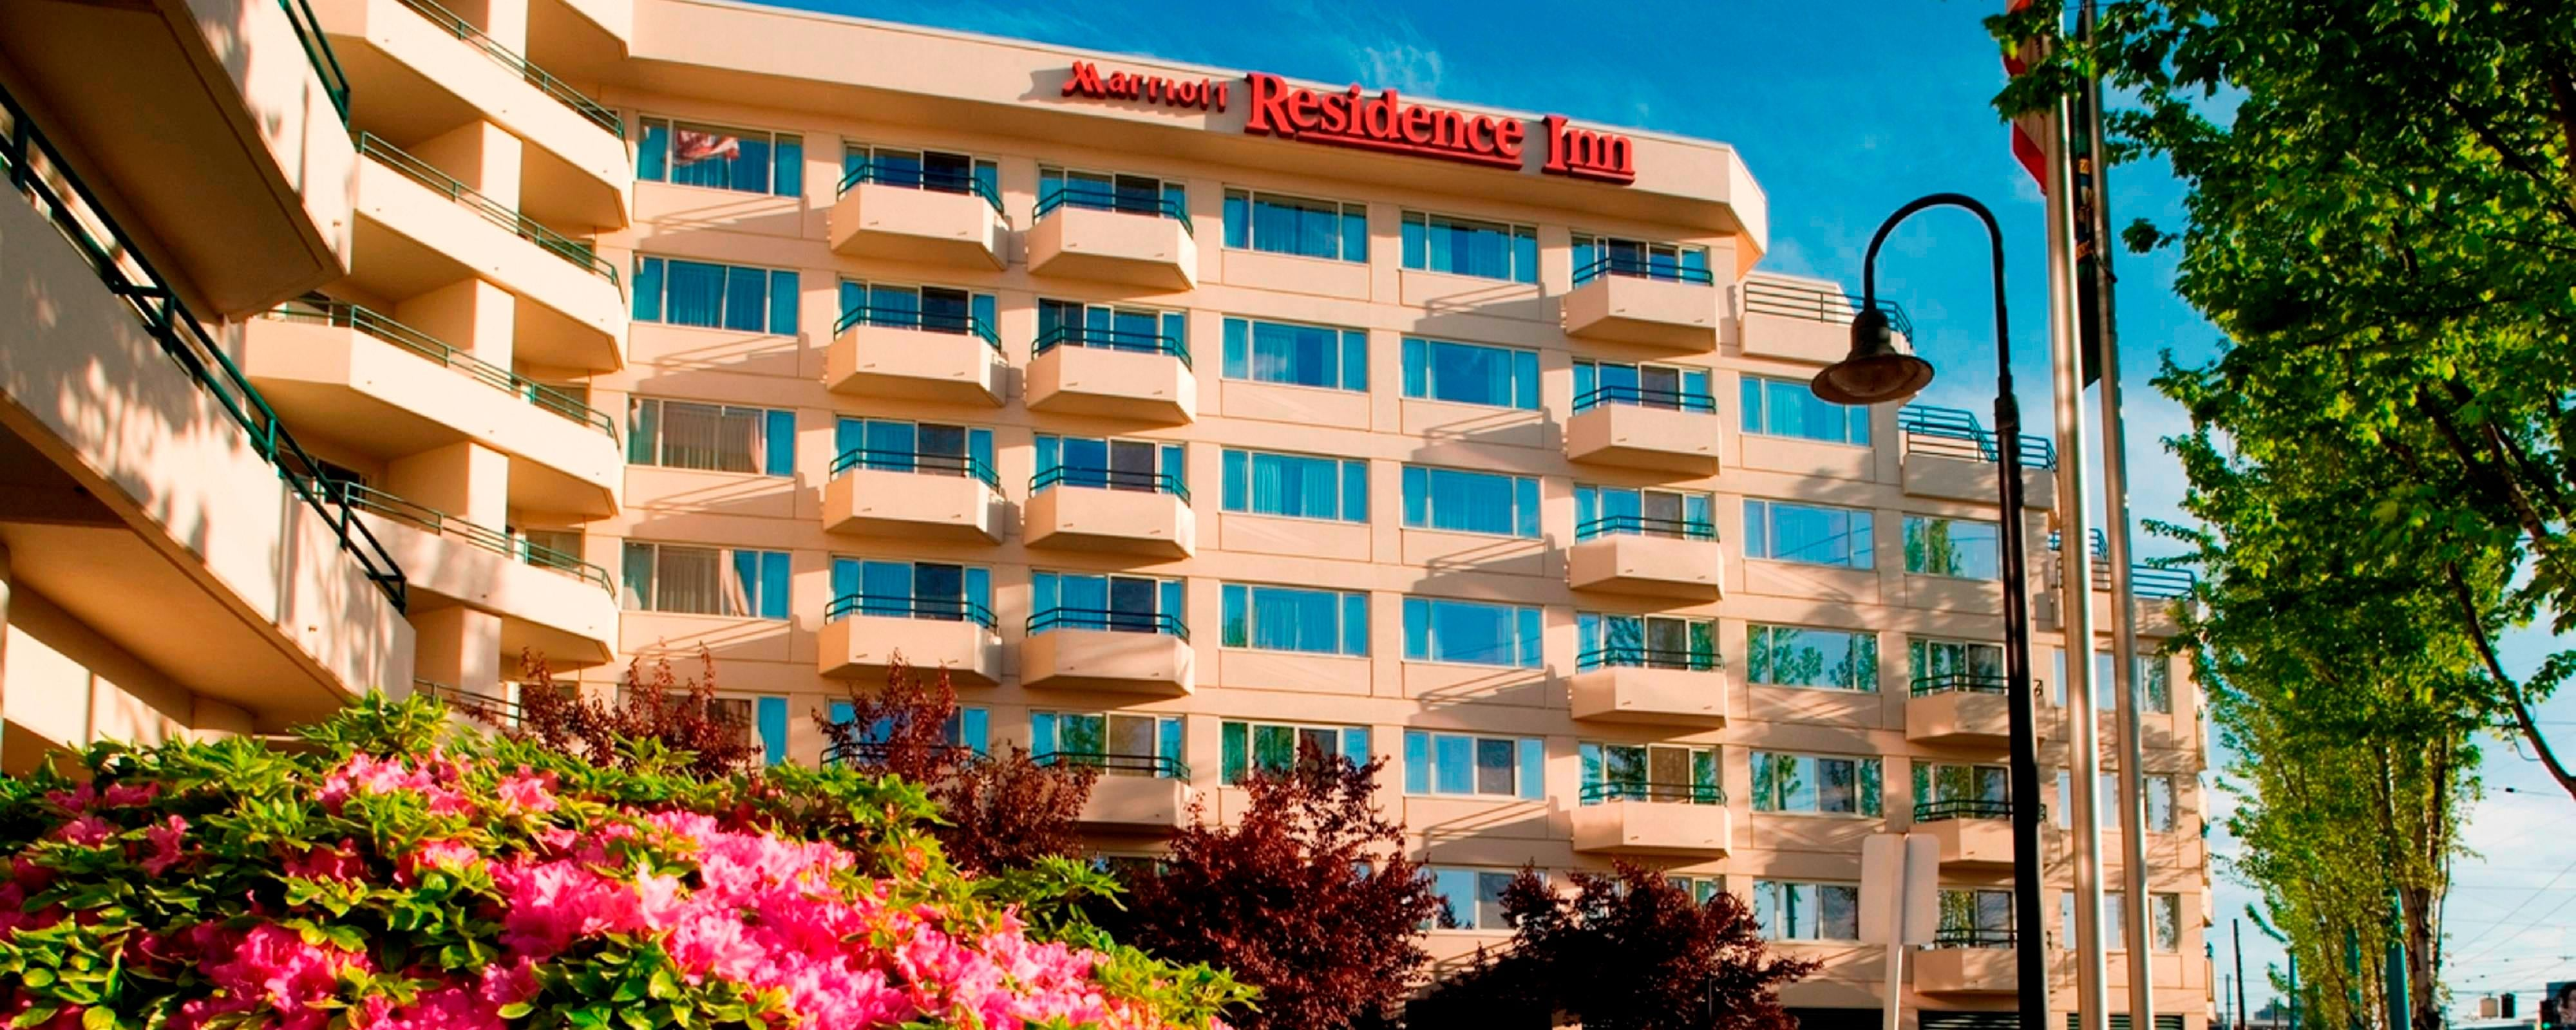 Exterior – Seattle Residence Inn